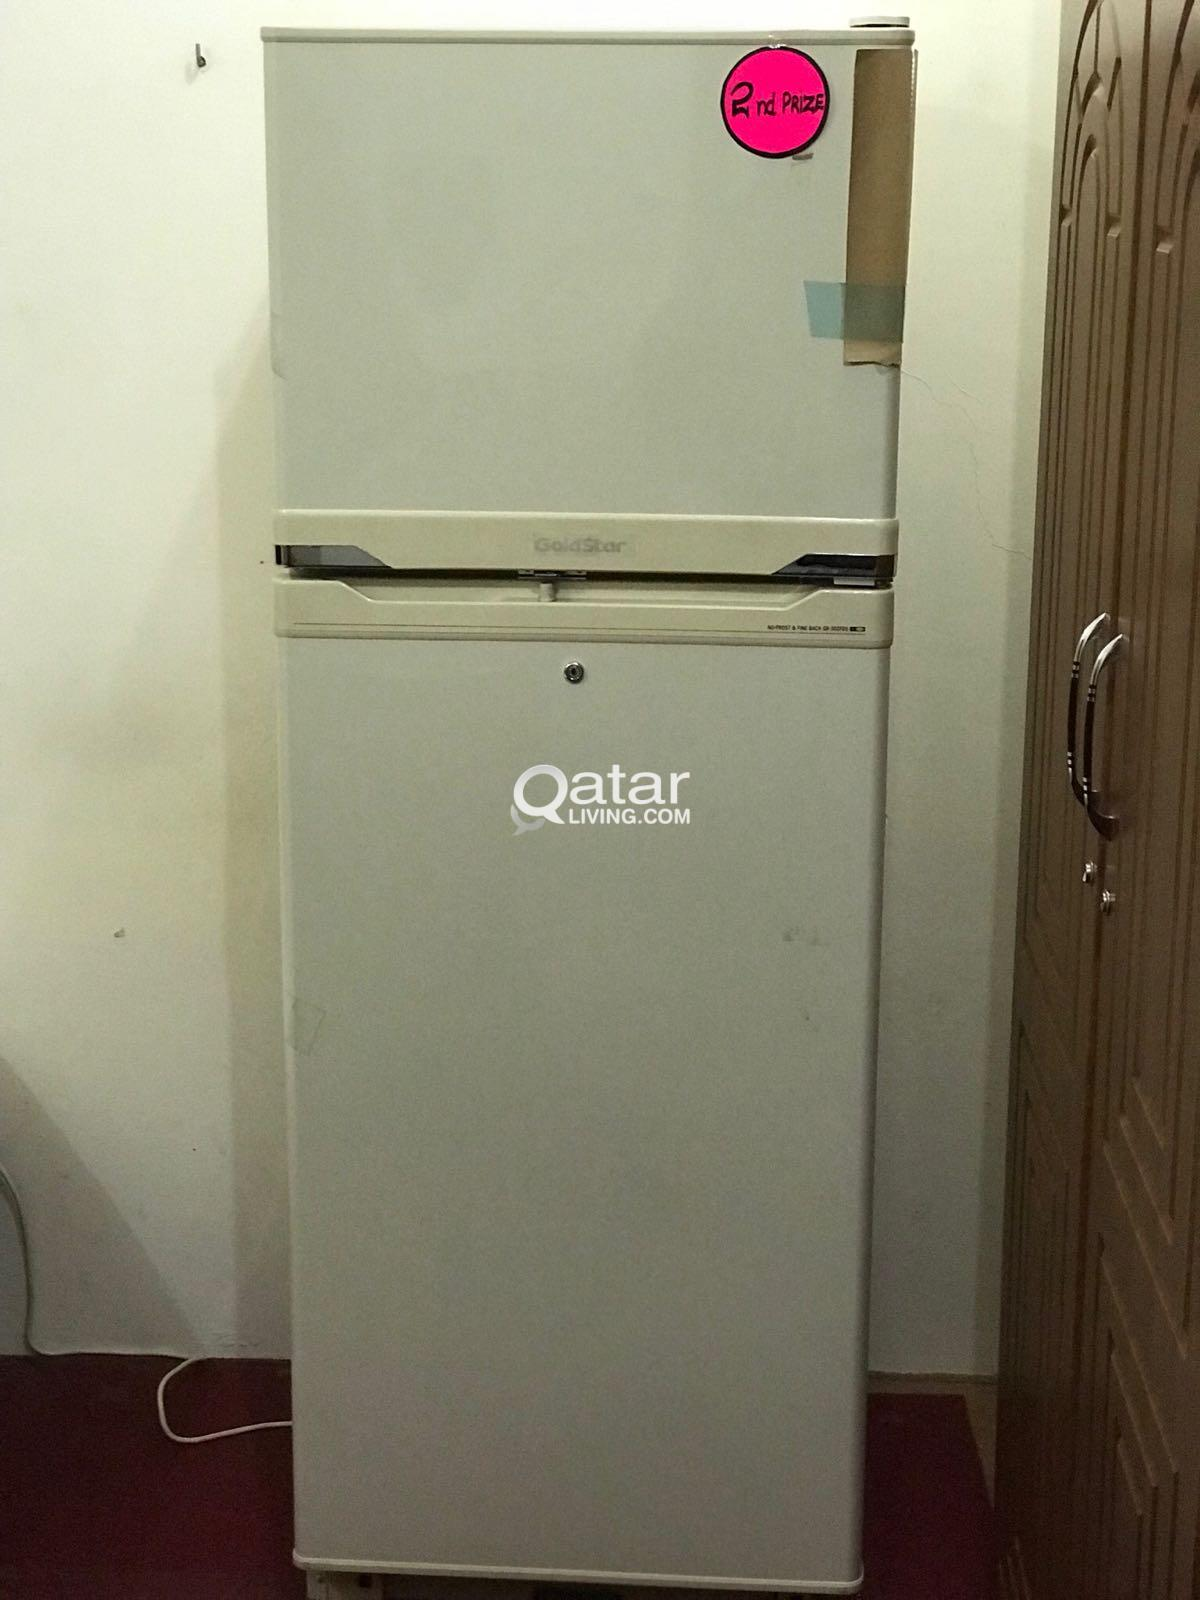 Gold Star Refrigerator | Qatar Living